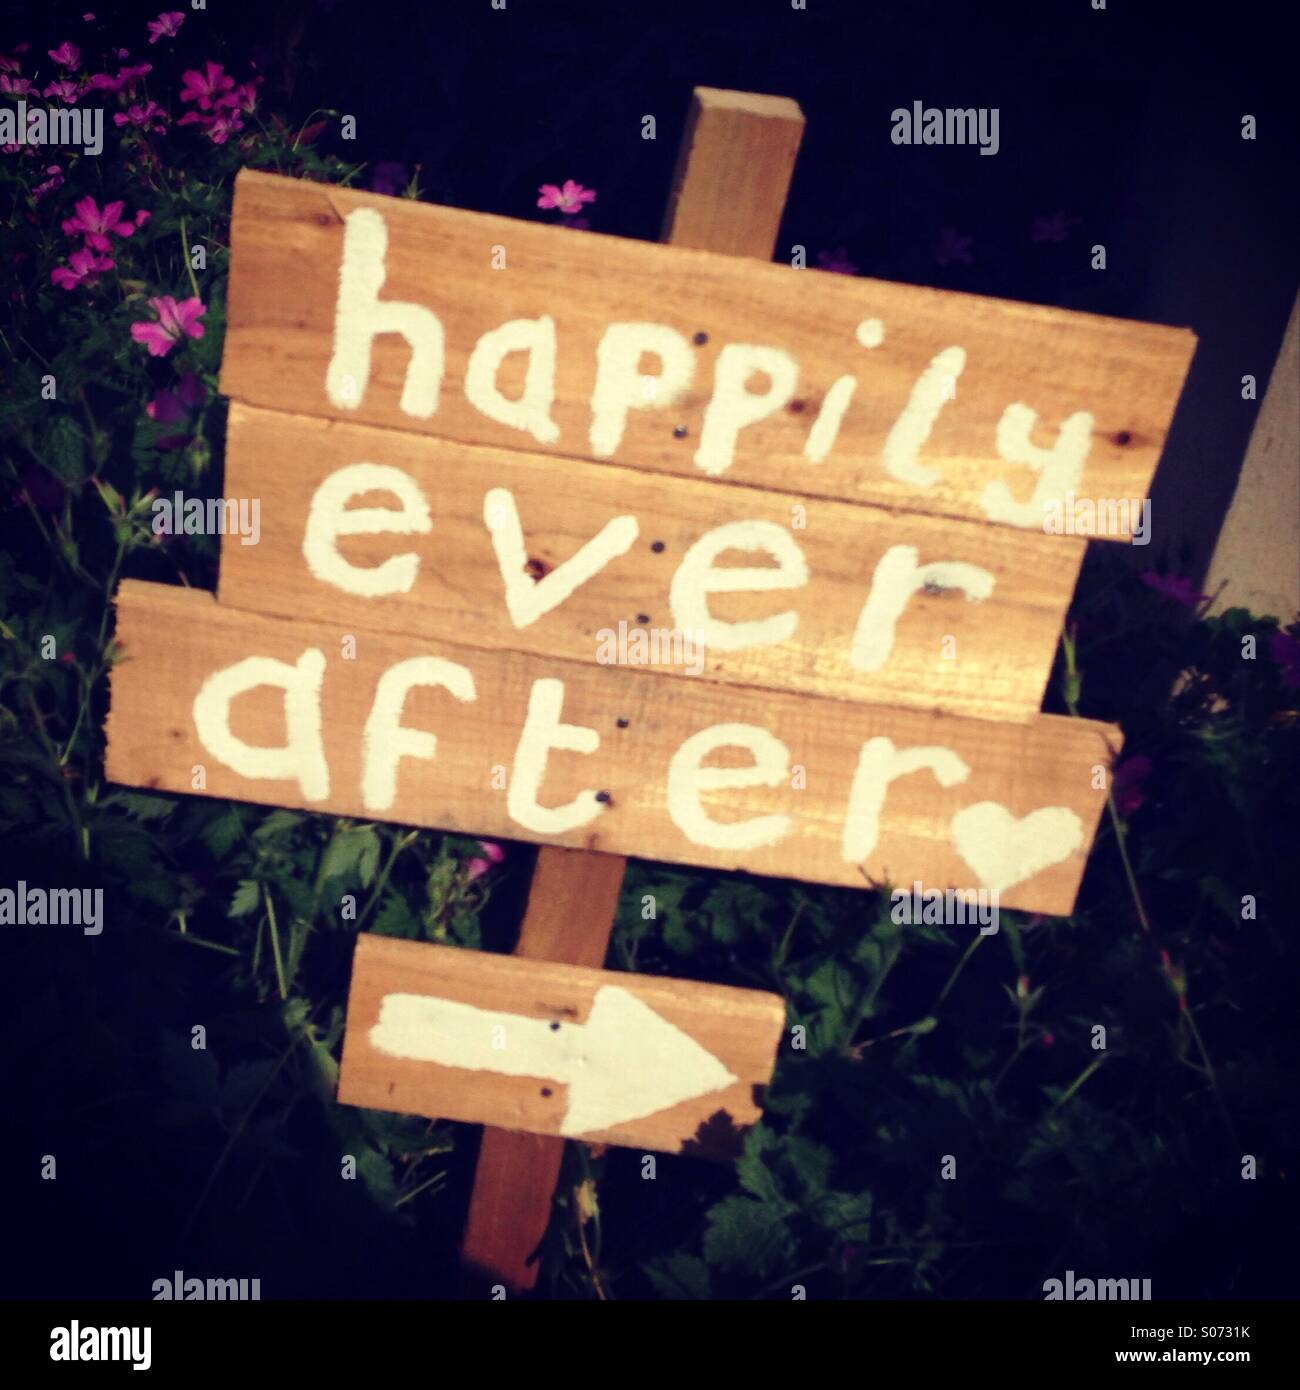 Happily ever after sign - Stock Image